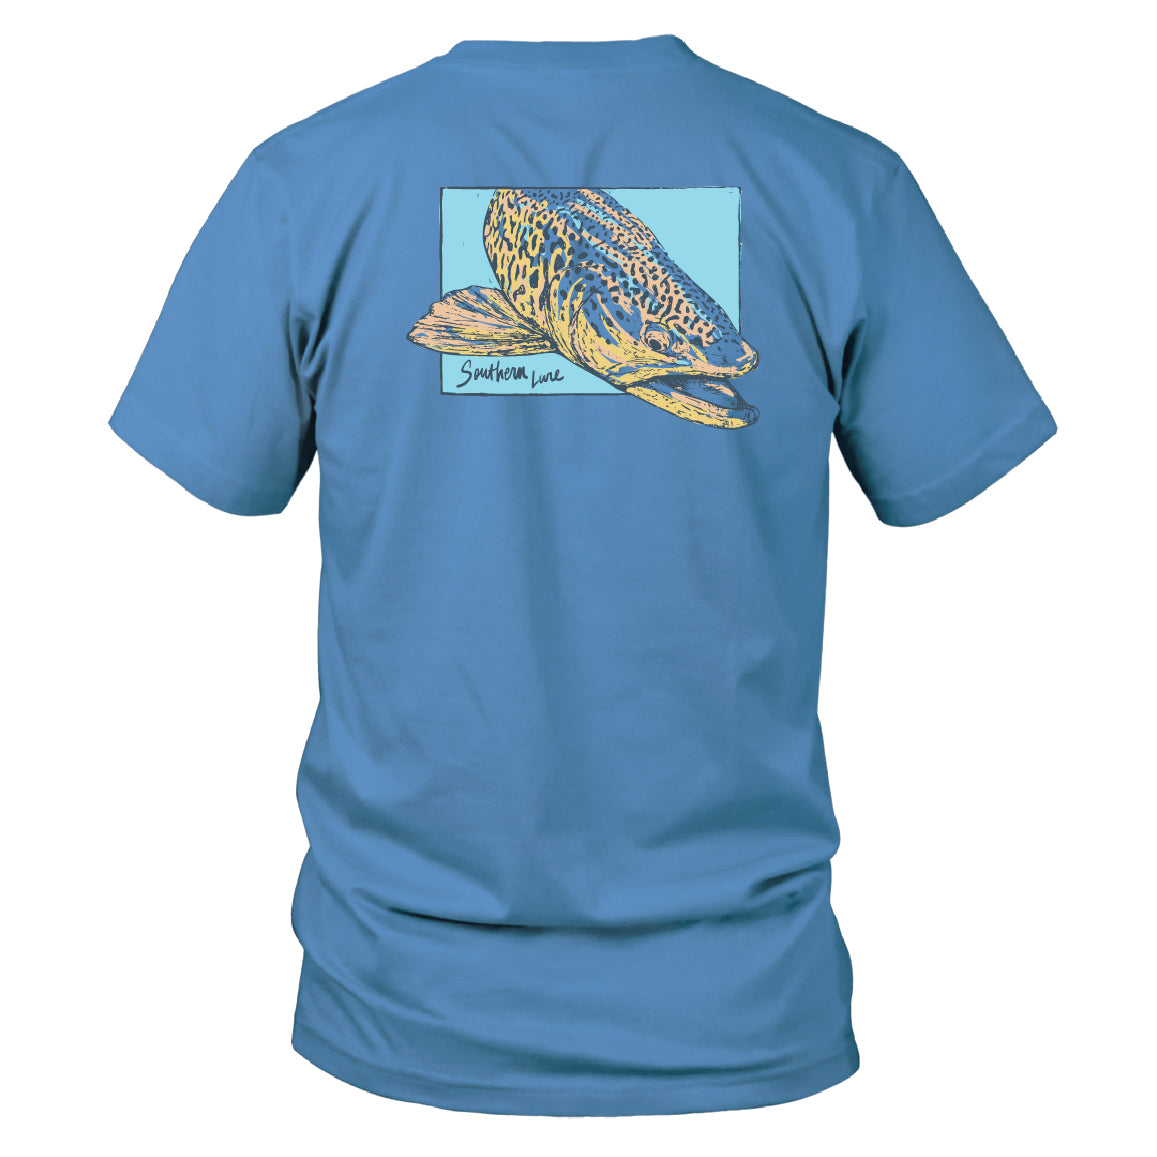 Men's Short Sleeve Cotton Tee - Verso Trout - Dusk